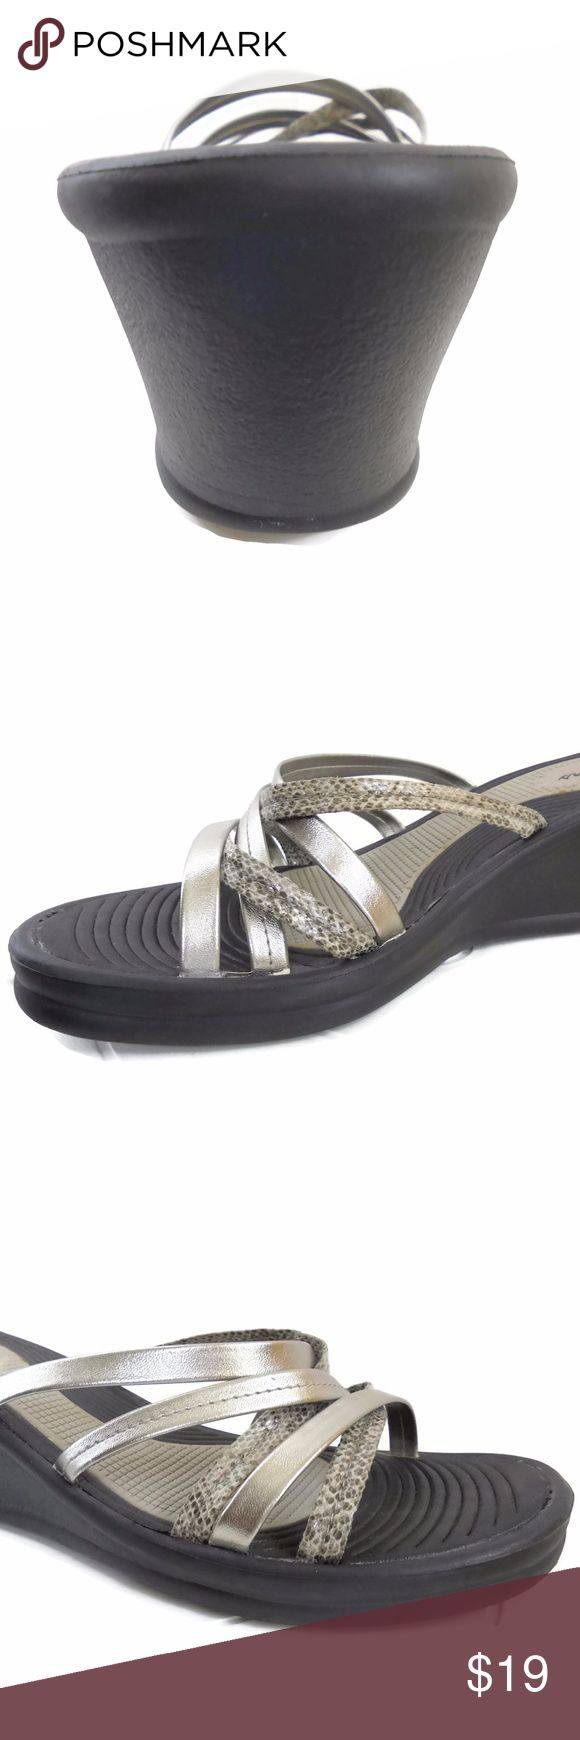 Skechers Wedge Heel Sandal Comfortable Wedge Sandals By Skechers Size 10 Skechers Shoes Sandals